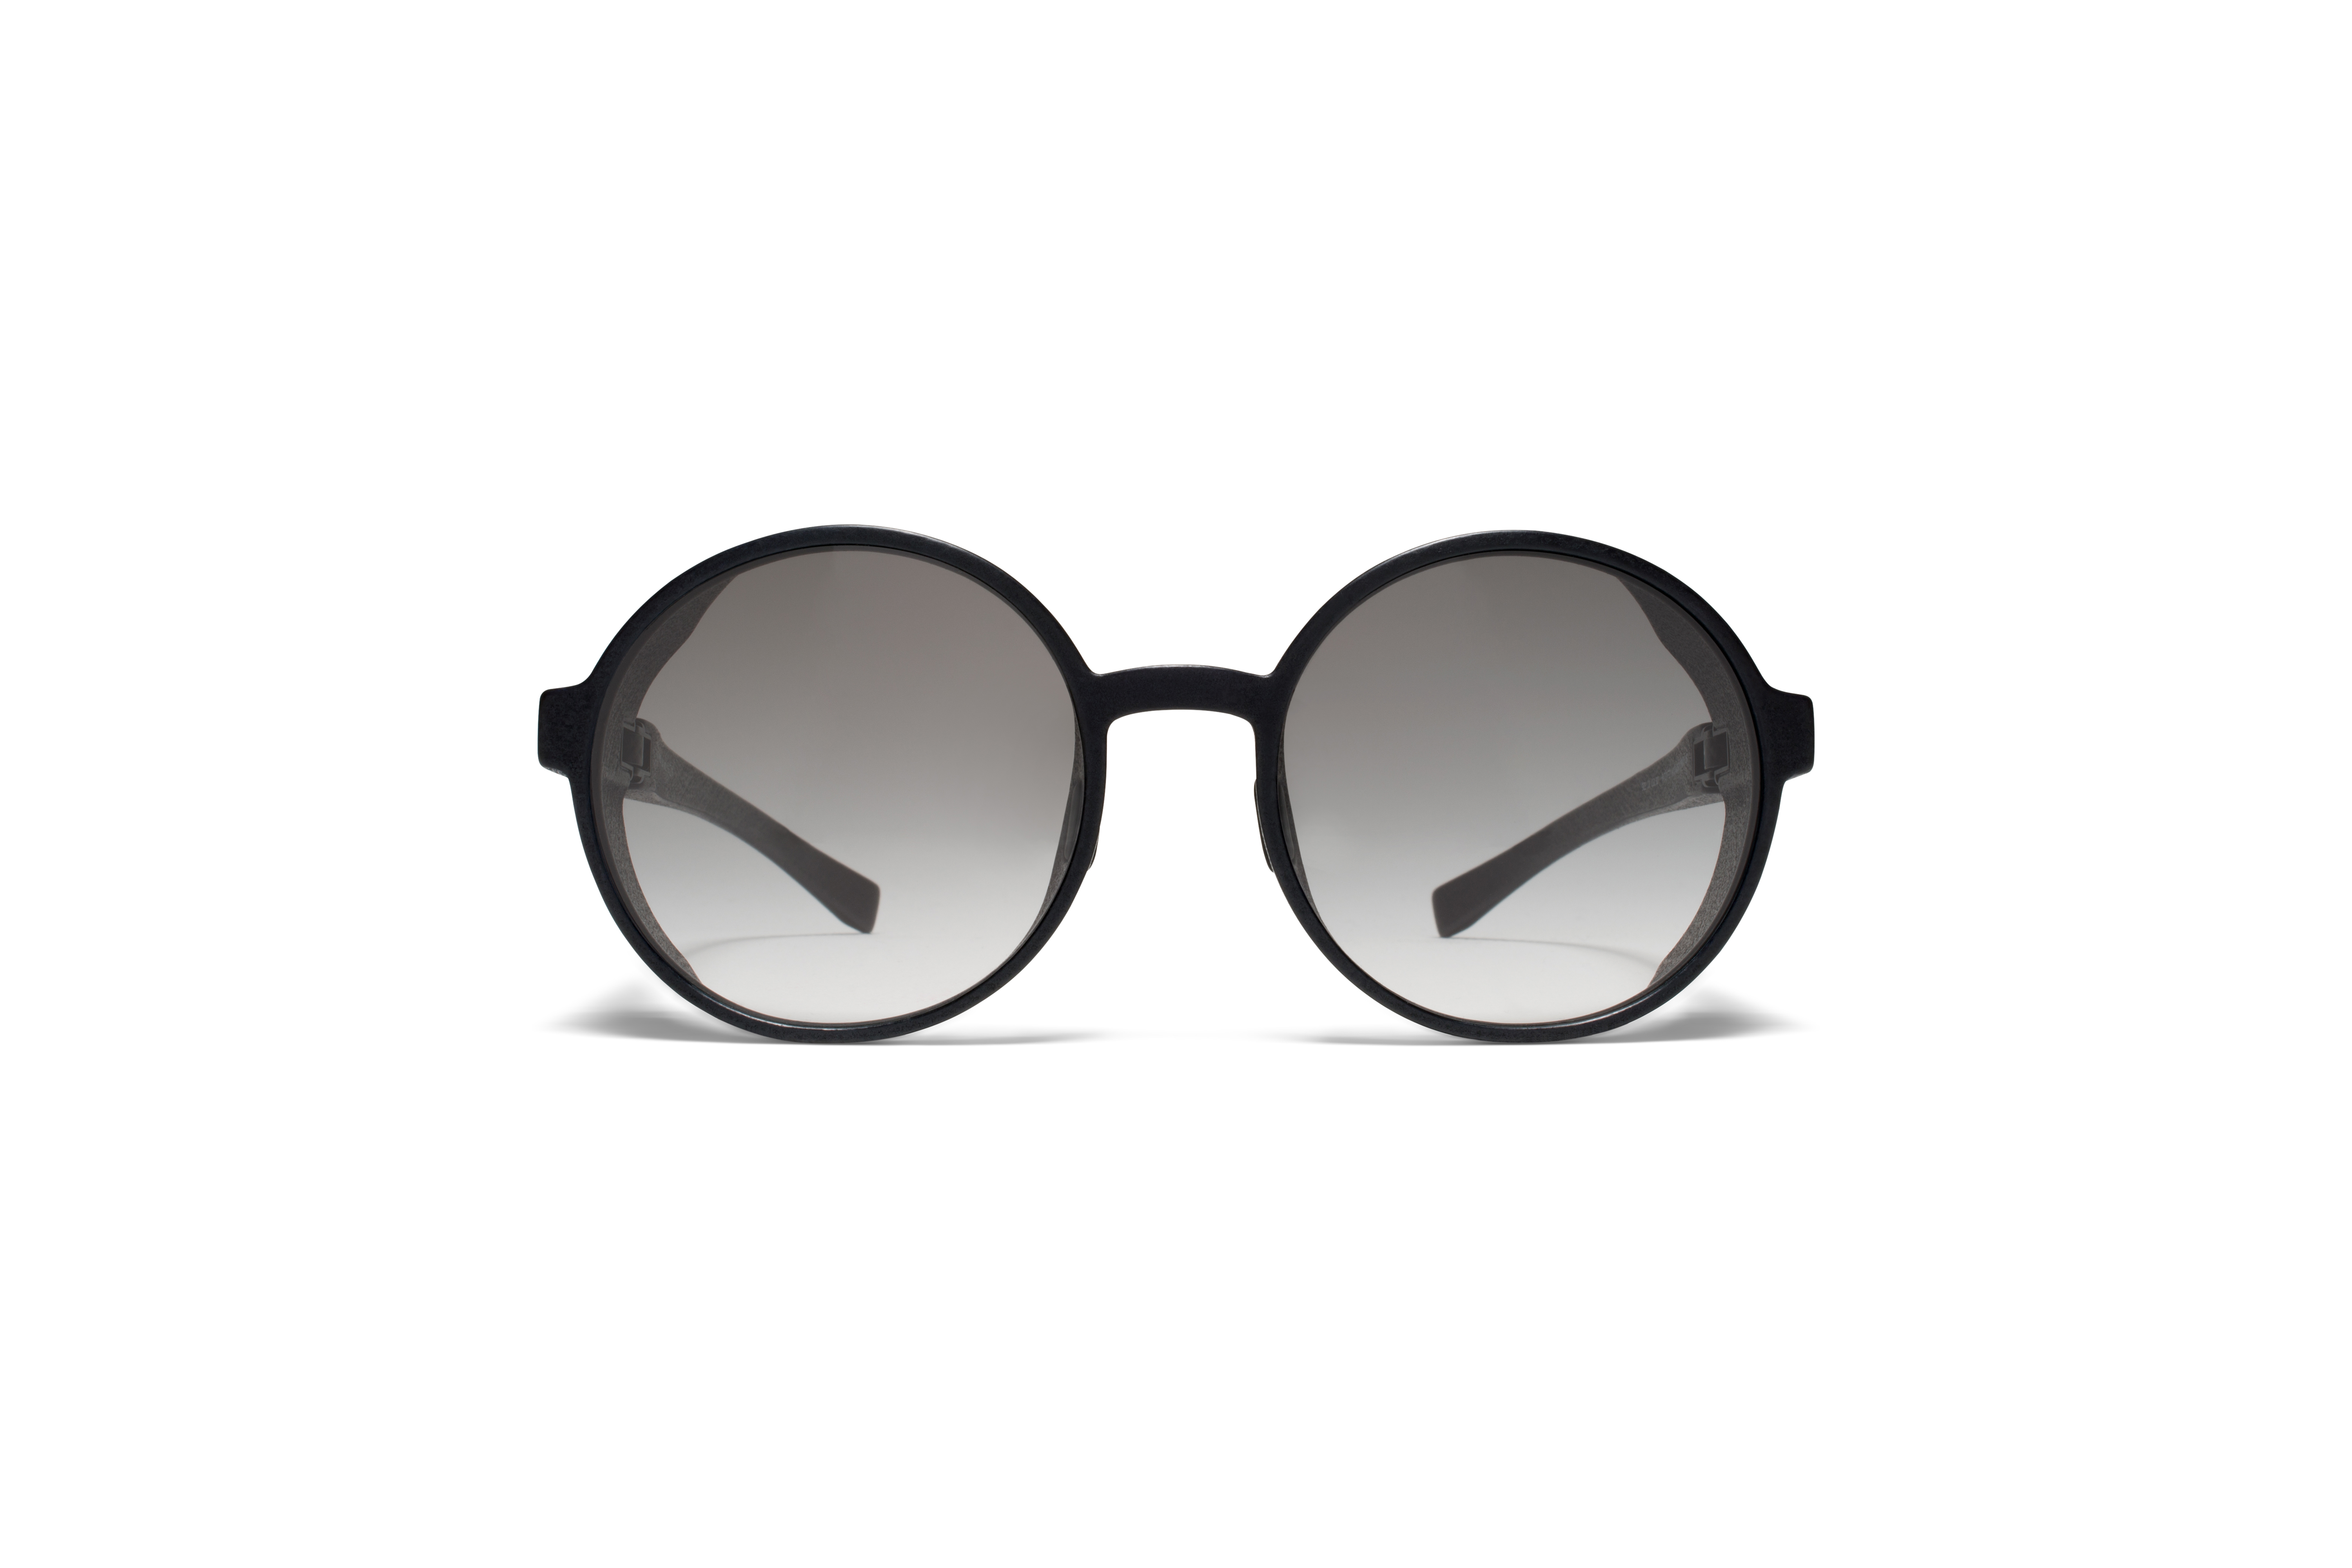 MYKITA Mylon Sun Jiro Md1 Pitch Black Black Gradie590b3f363567d